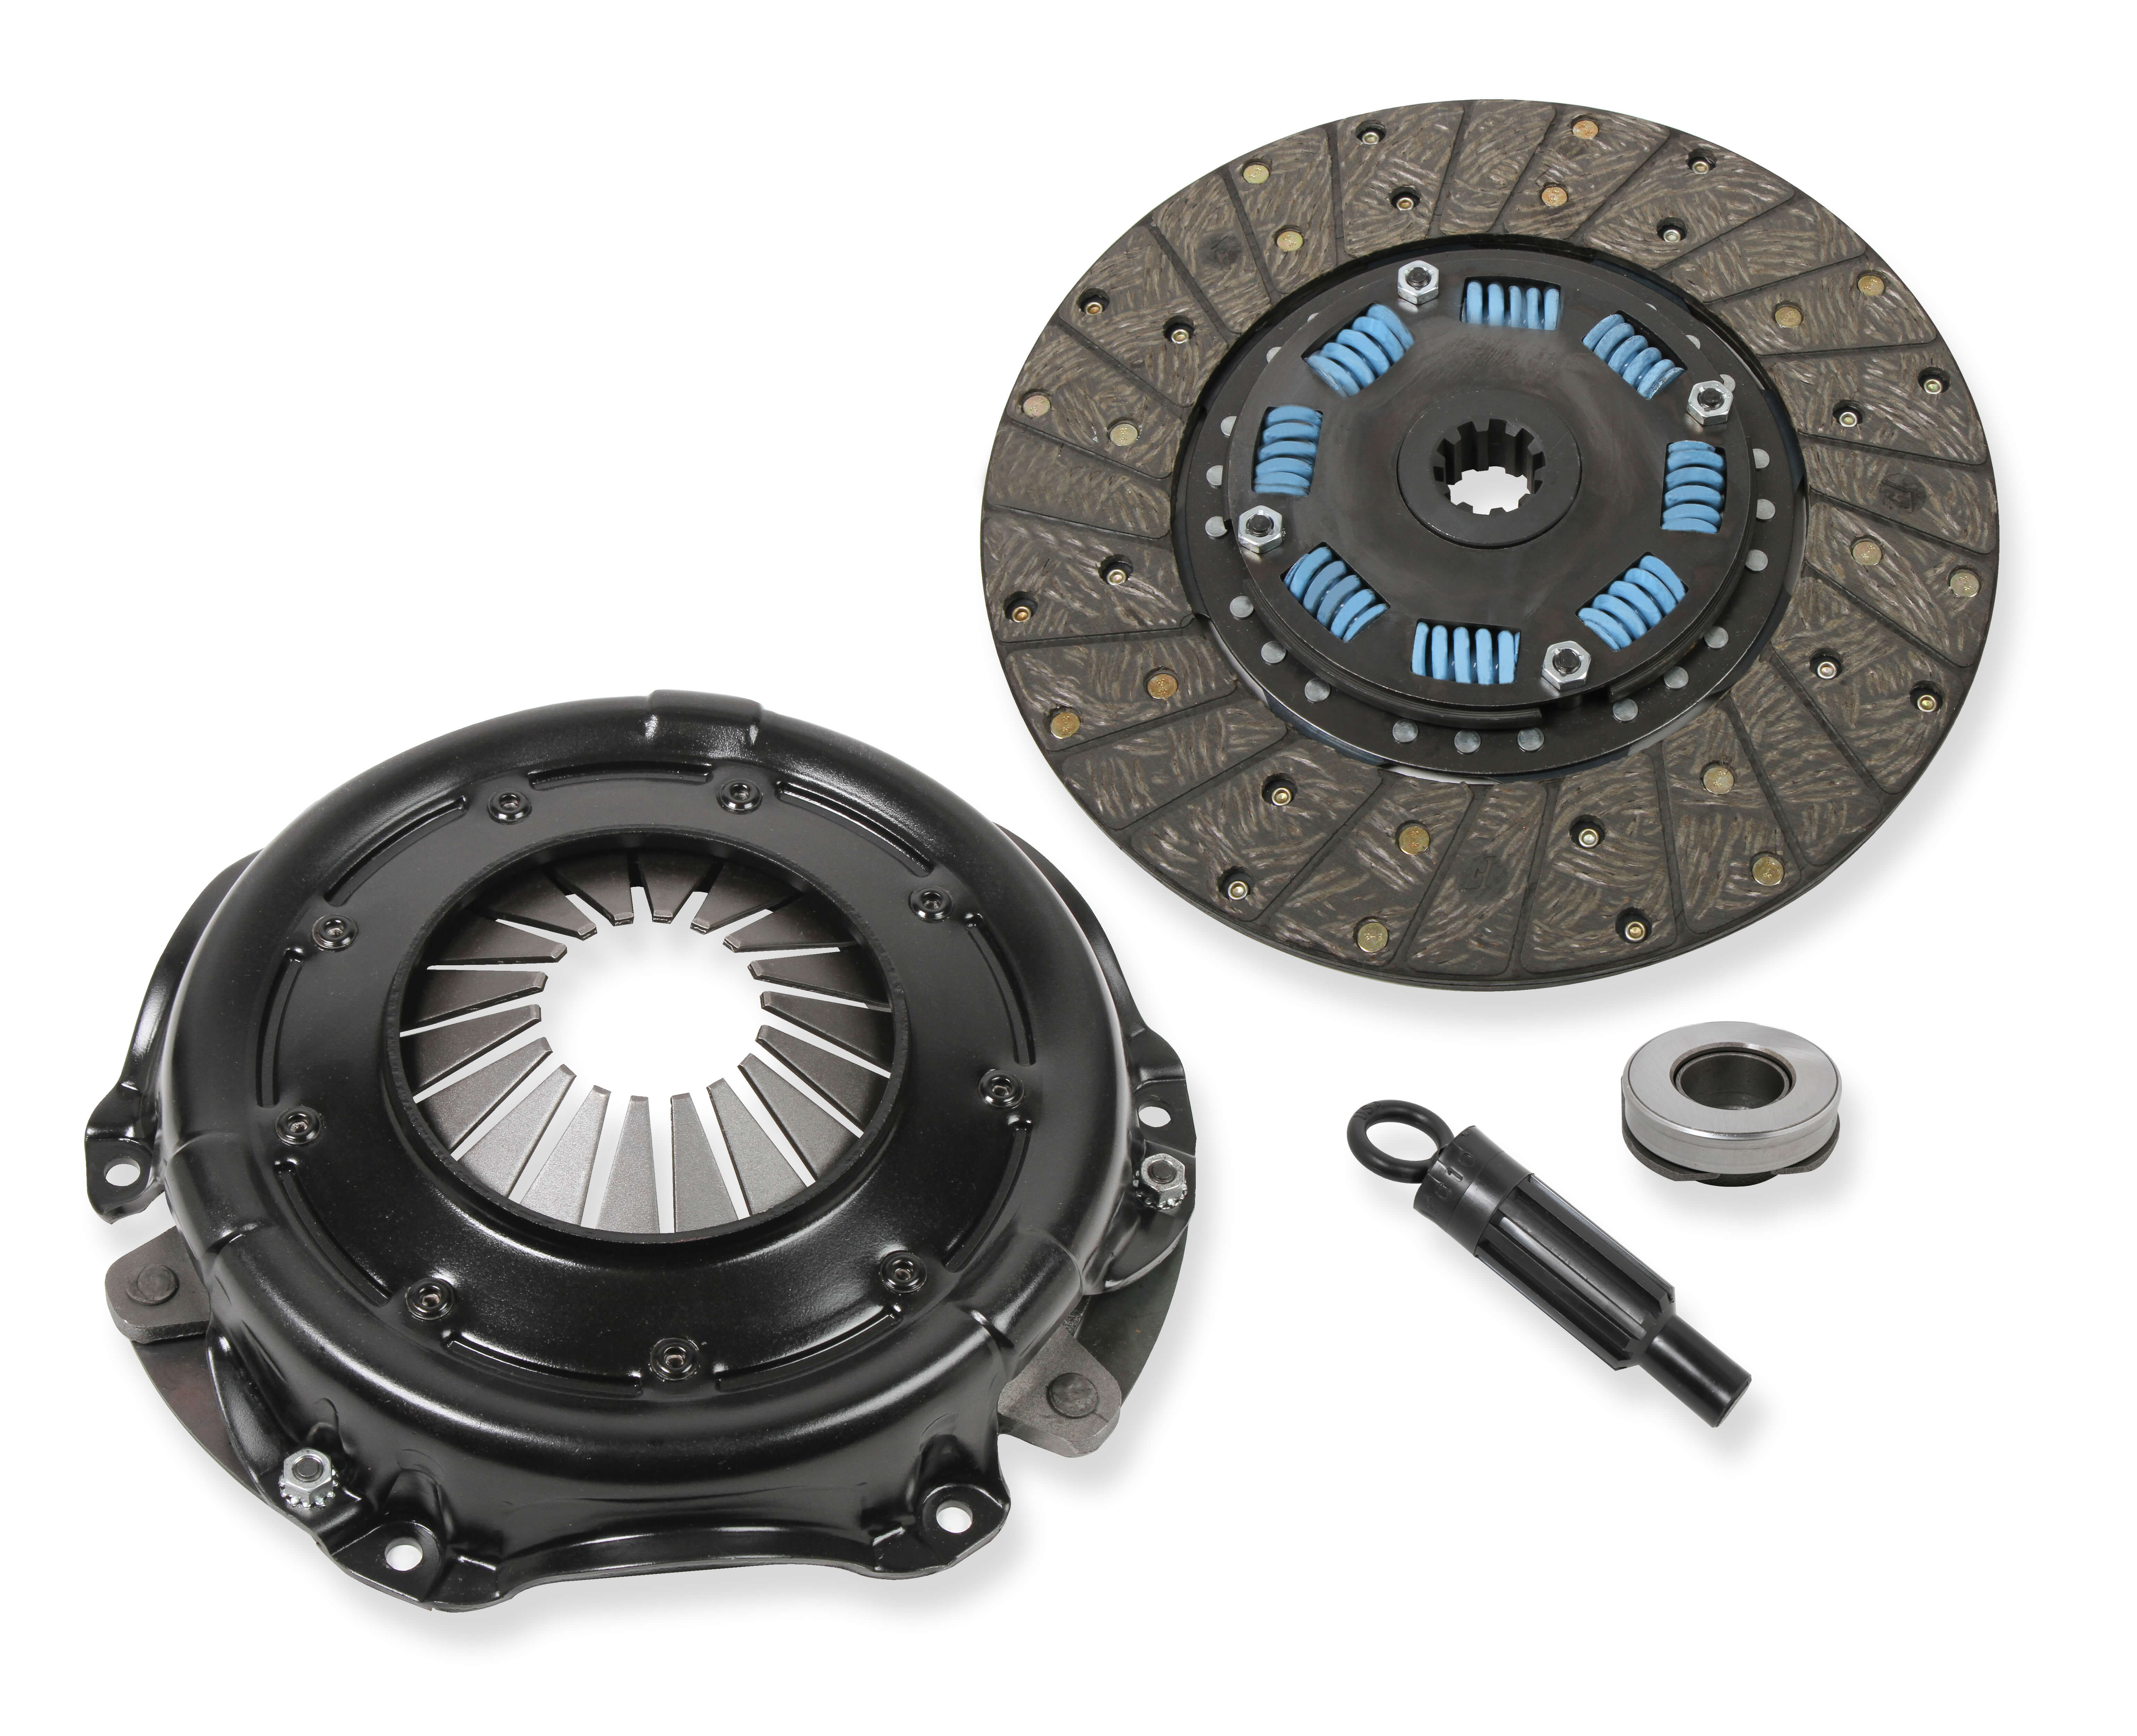 91-2003 Hays Clutch Set 10.5 Inch Clutch Diameter